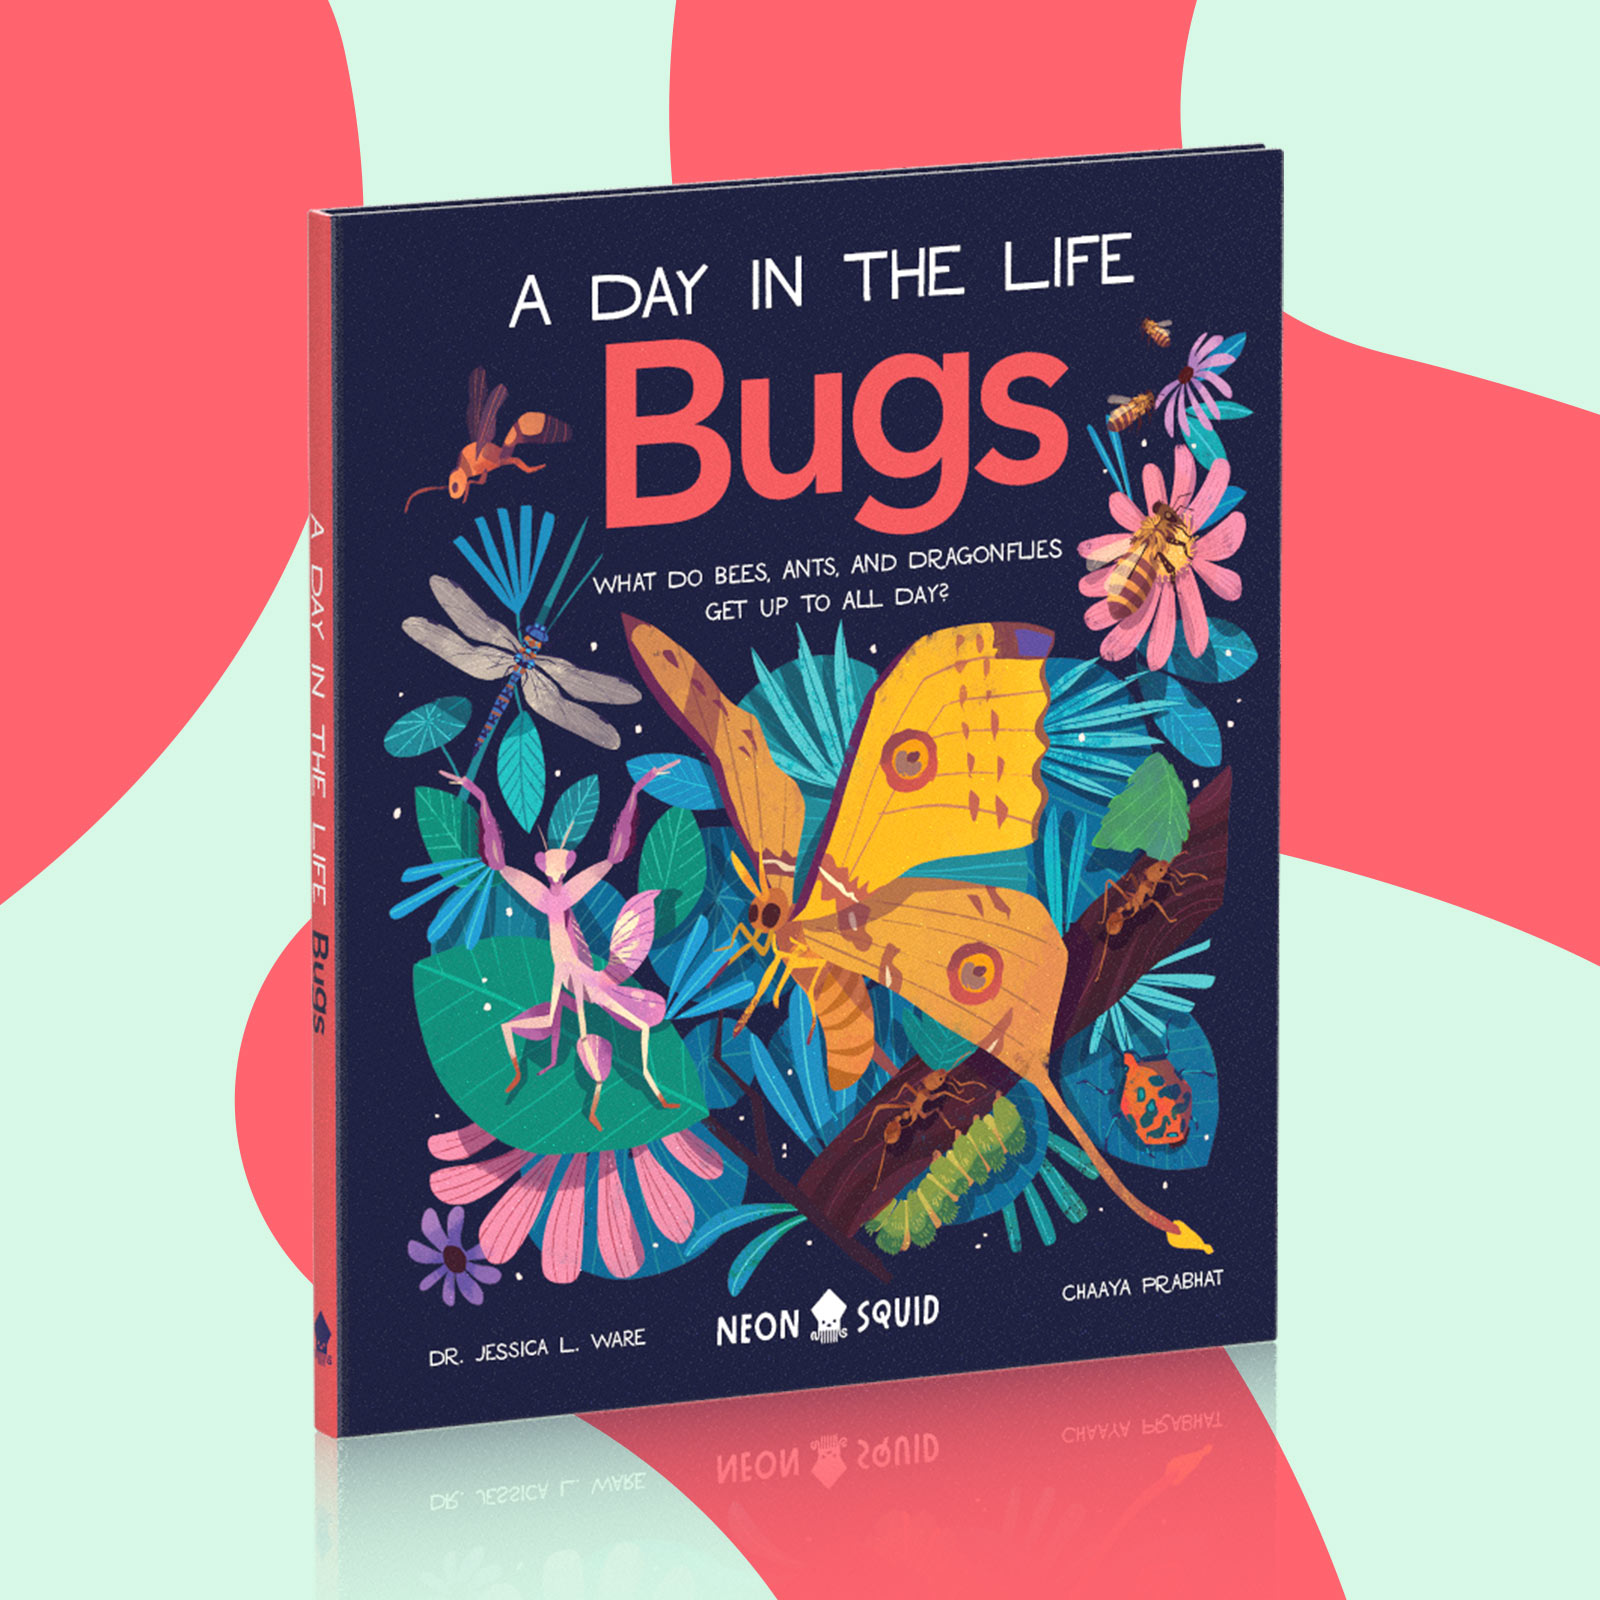 """The book """"A Day in the Life: Bugs"""", on a red and blue background."""